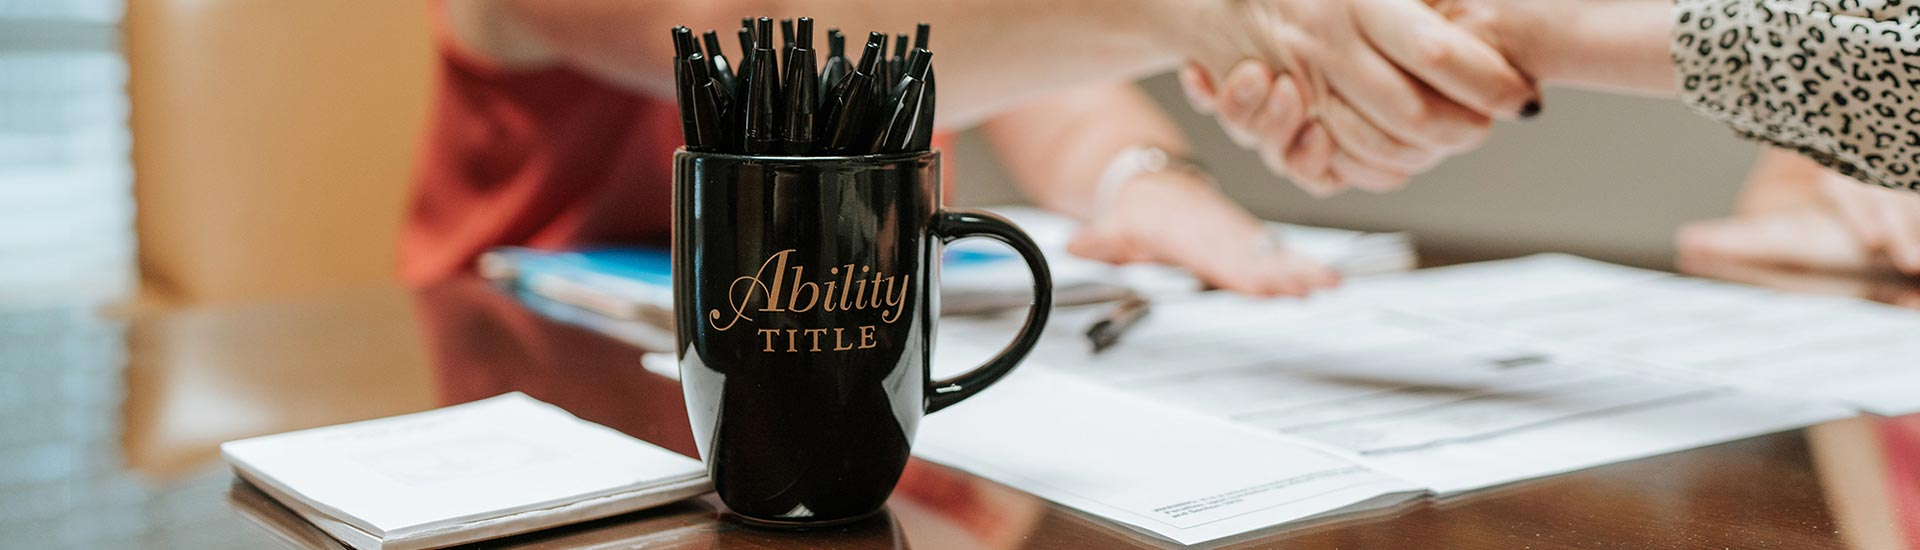 Ability Title header